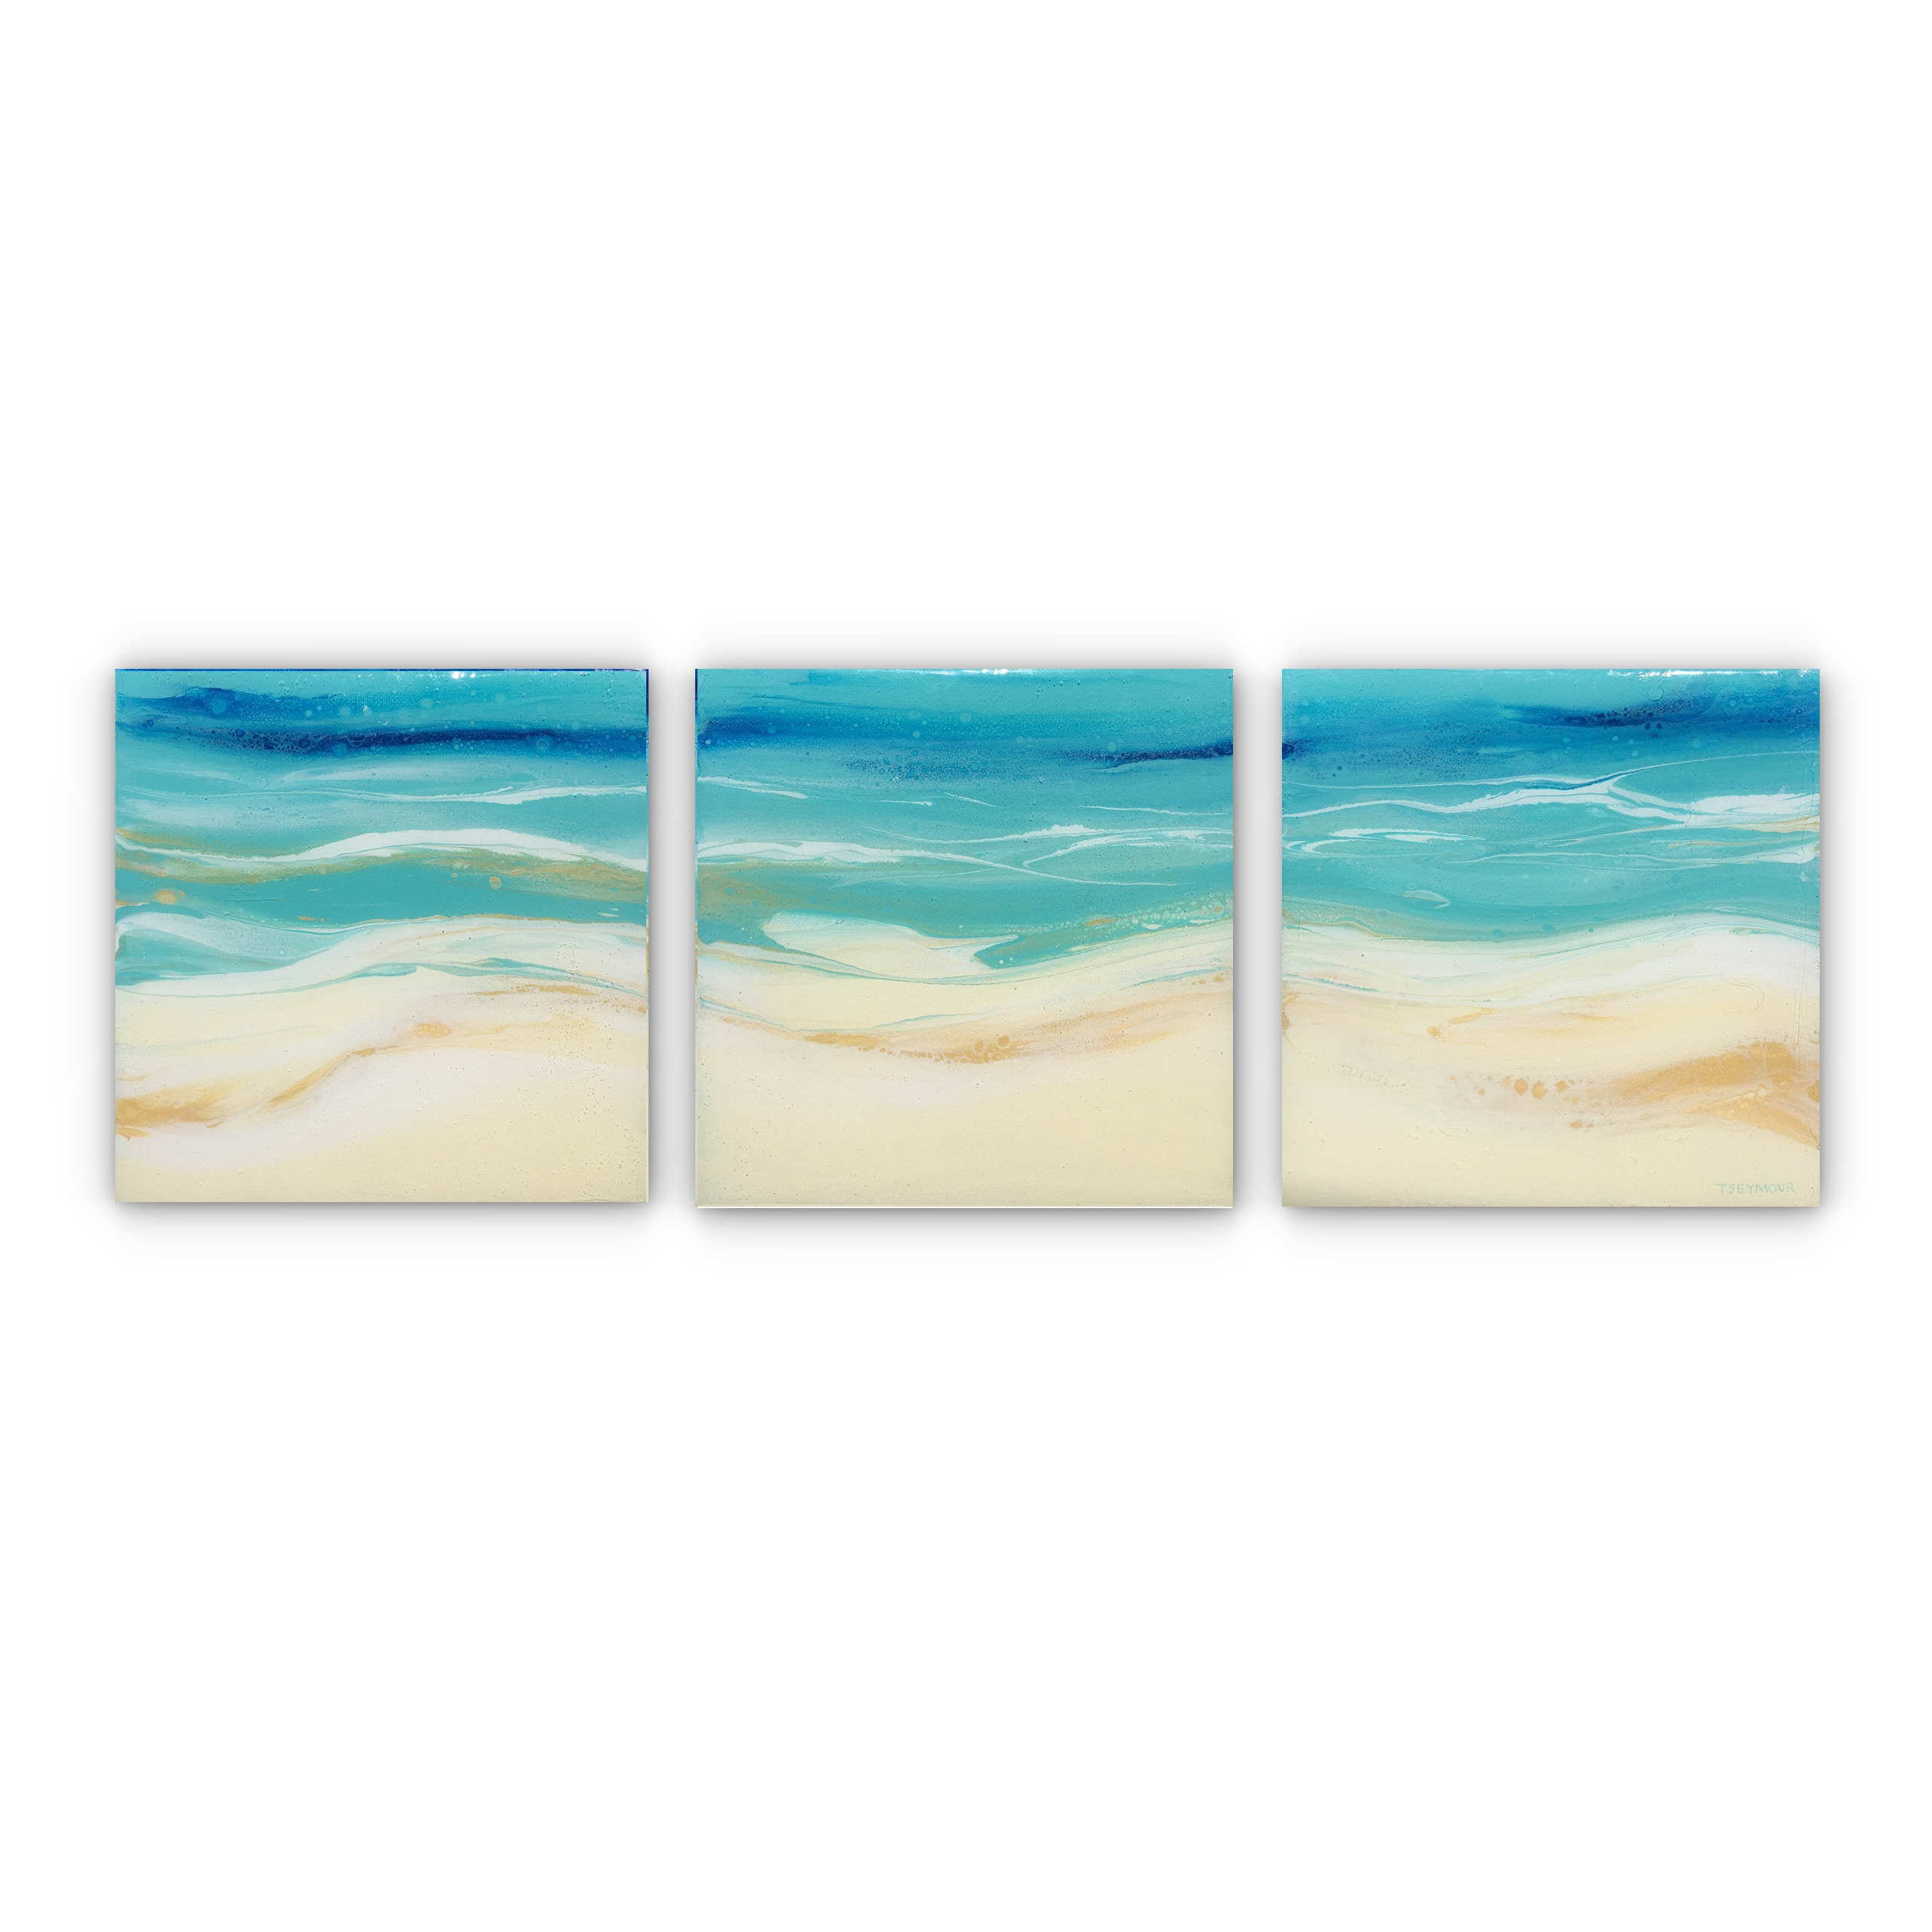 SALTED SEAS (triptych)